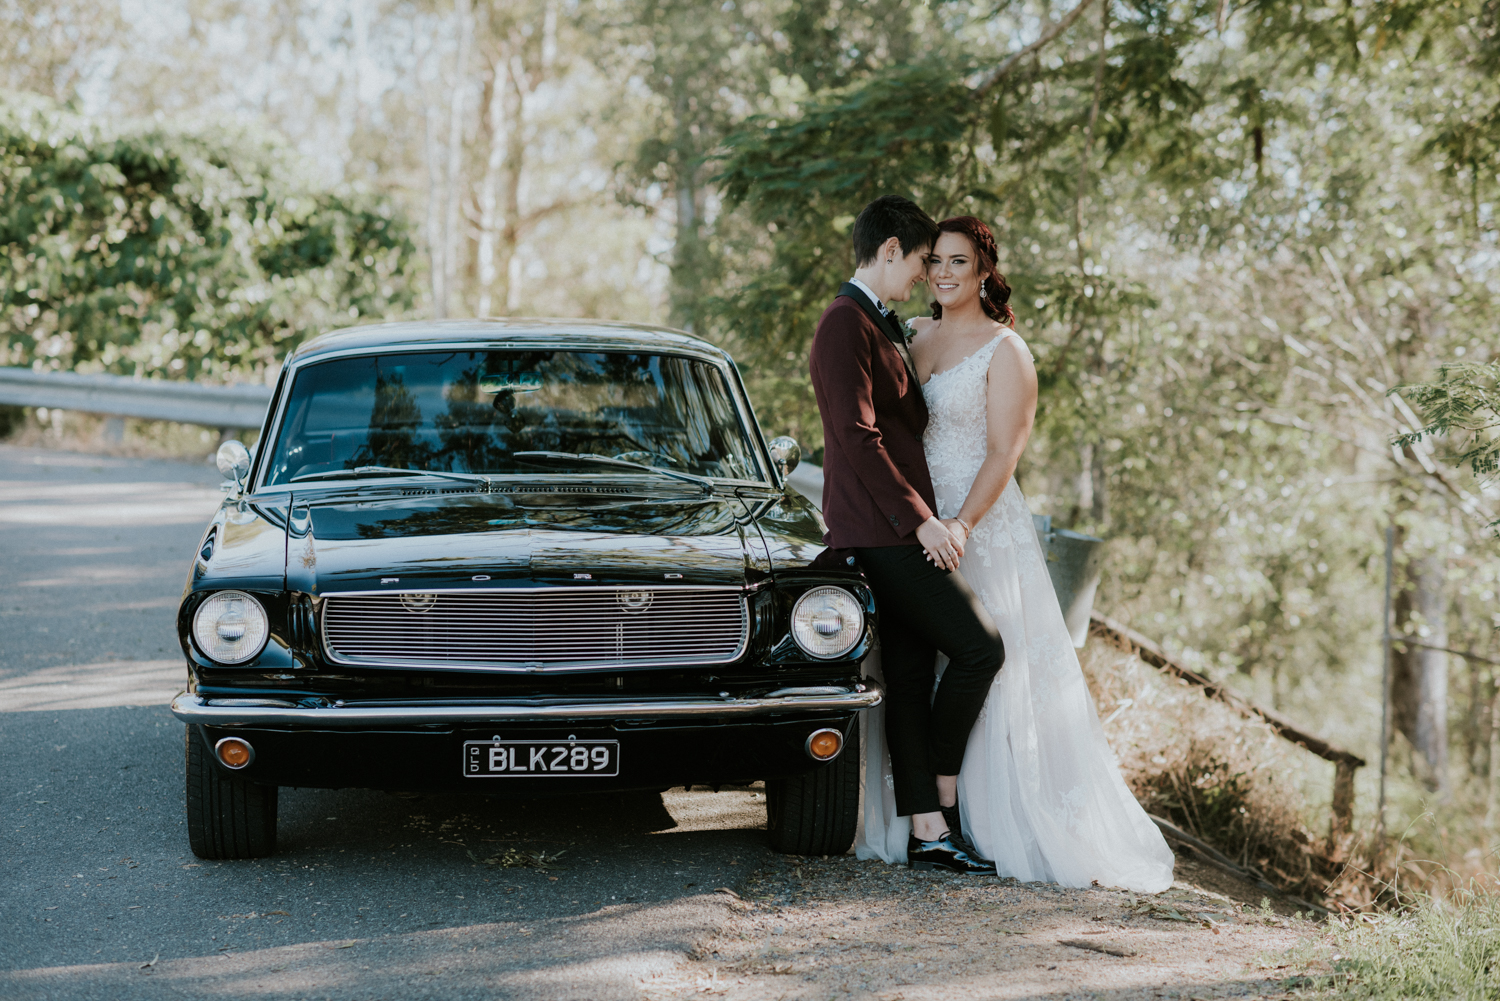 Brisbane Wedding Photographer | Walkabout Creek Photography-34.jpg